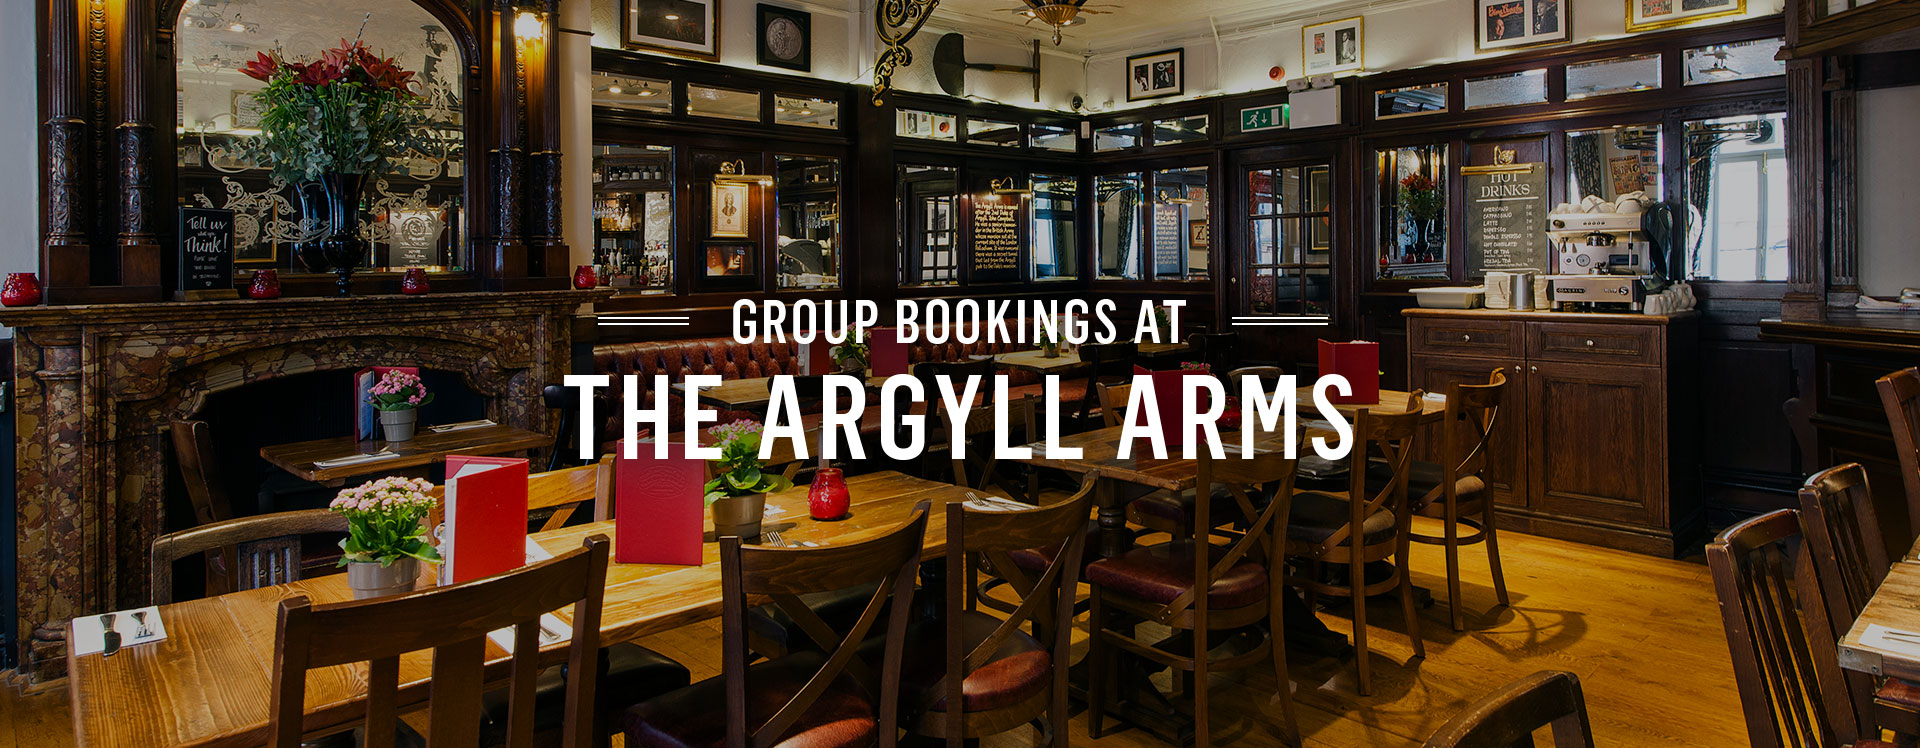 Group Bookings at The Argyll Arms